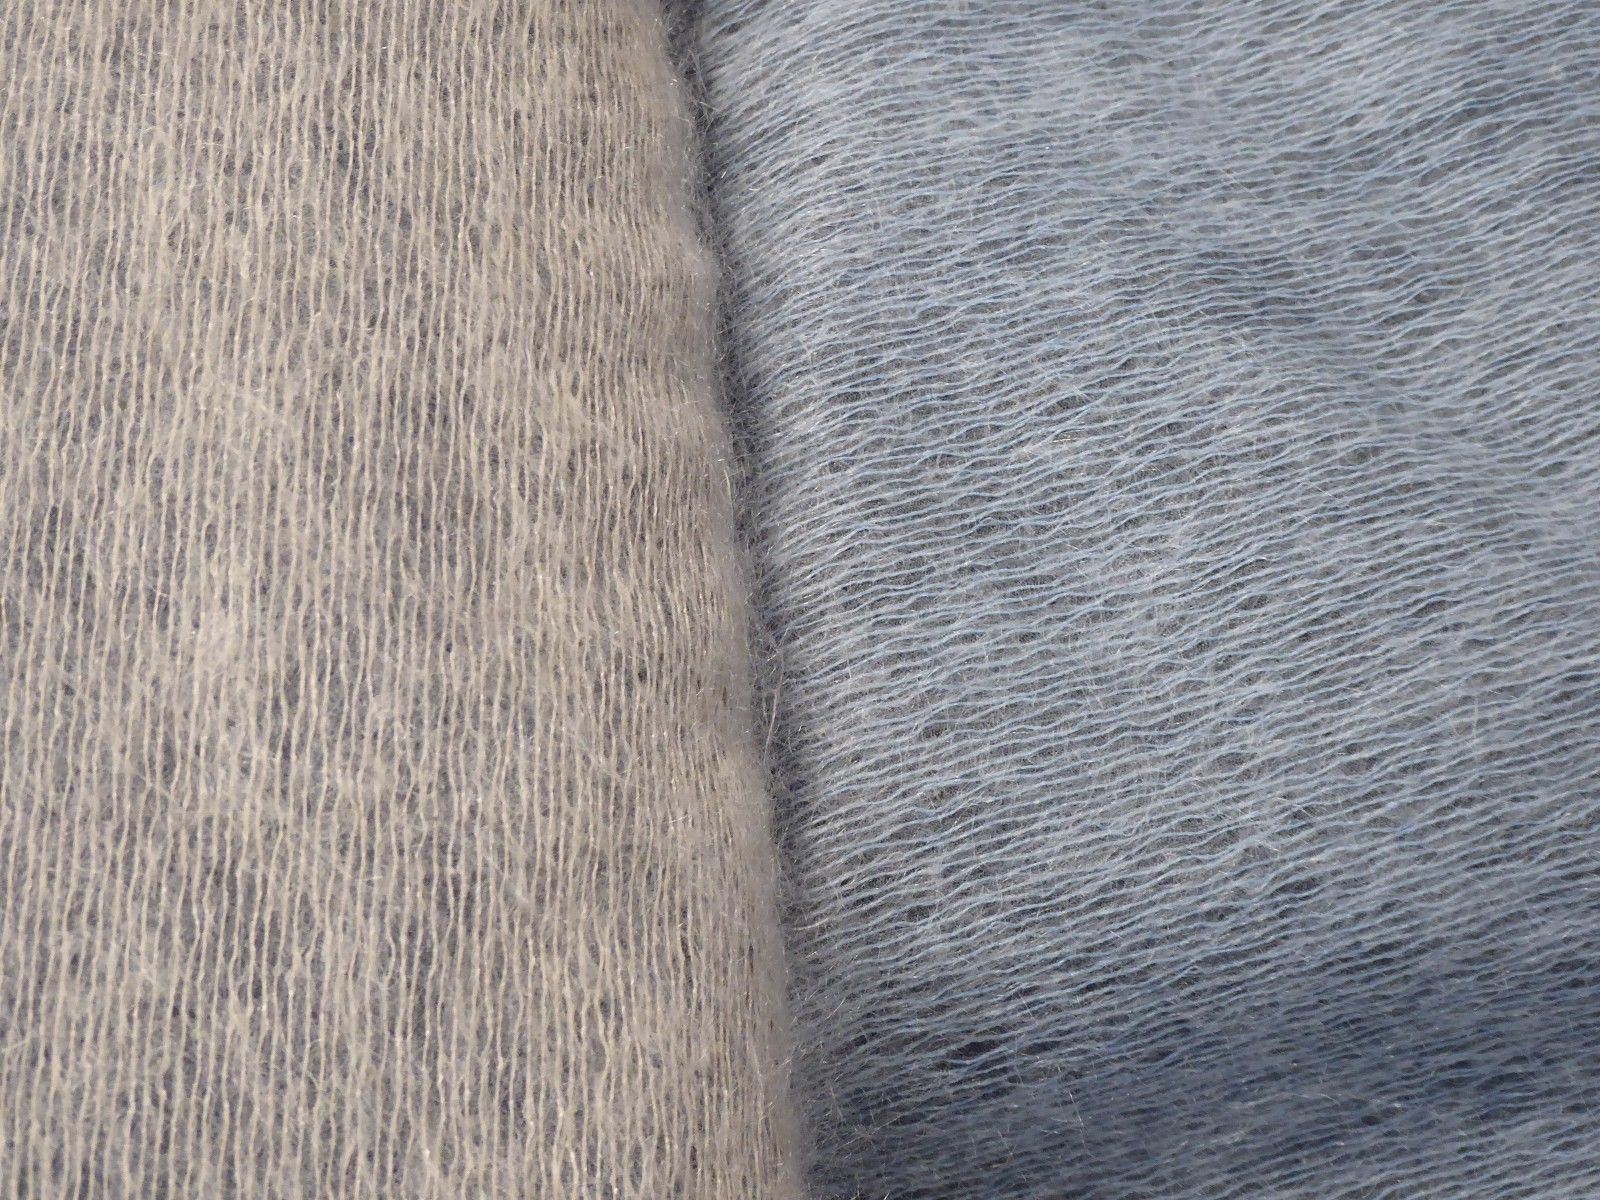 Mohair Fuzzy Fabric!! In 2 Dreamy Colors!! Blue Gray and Gray ...